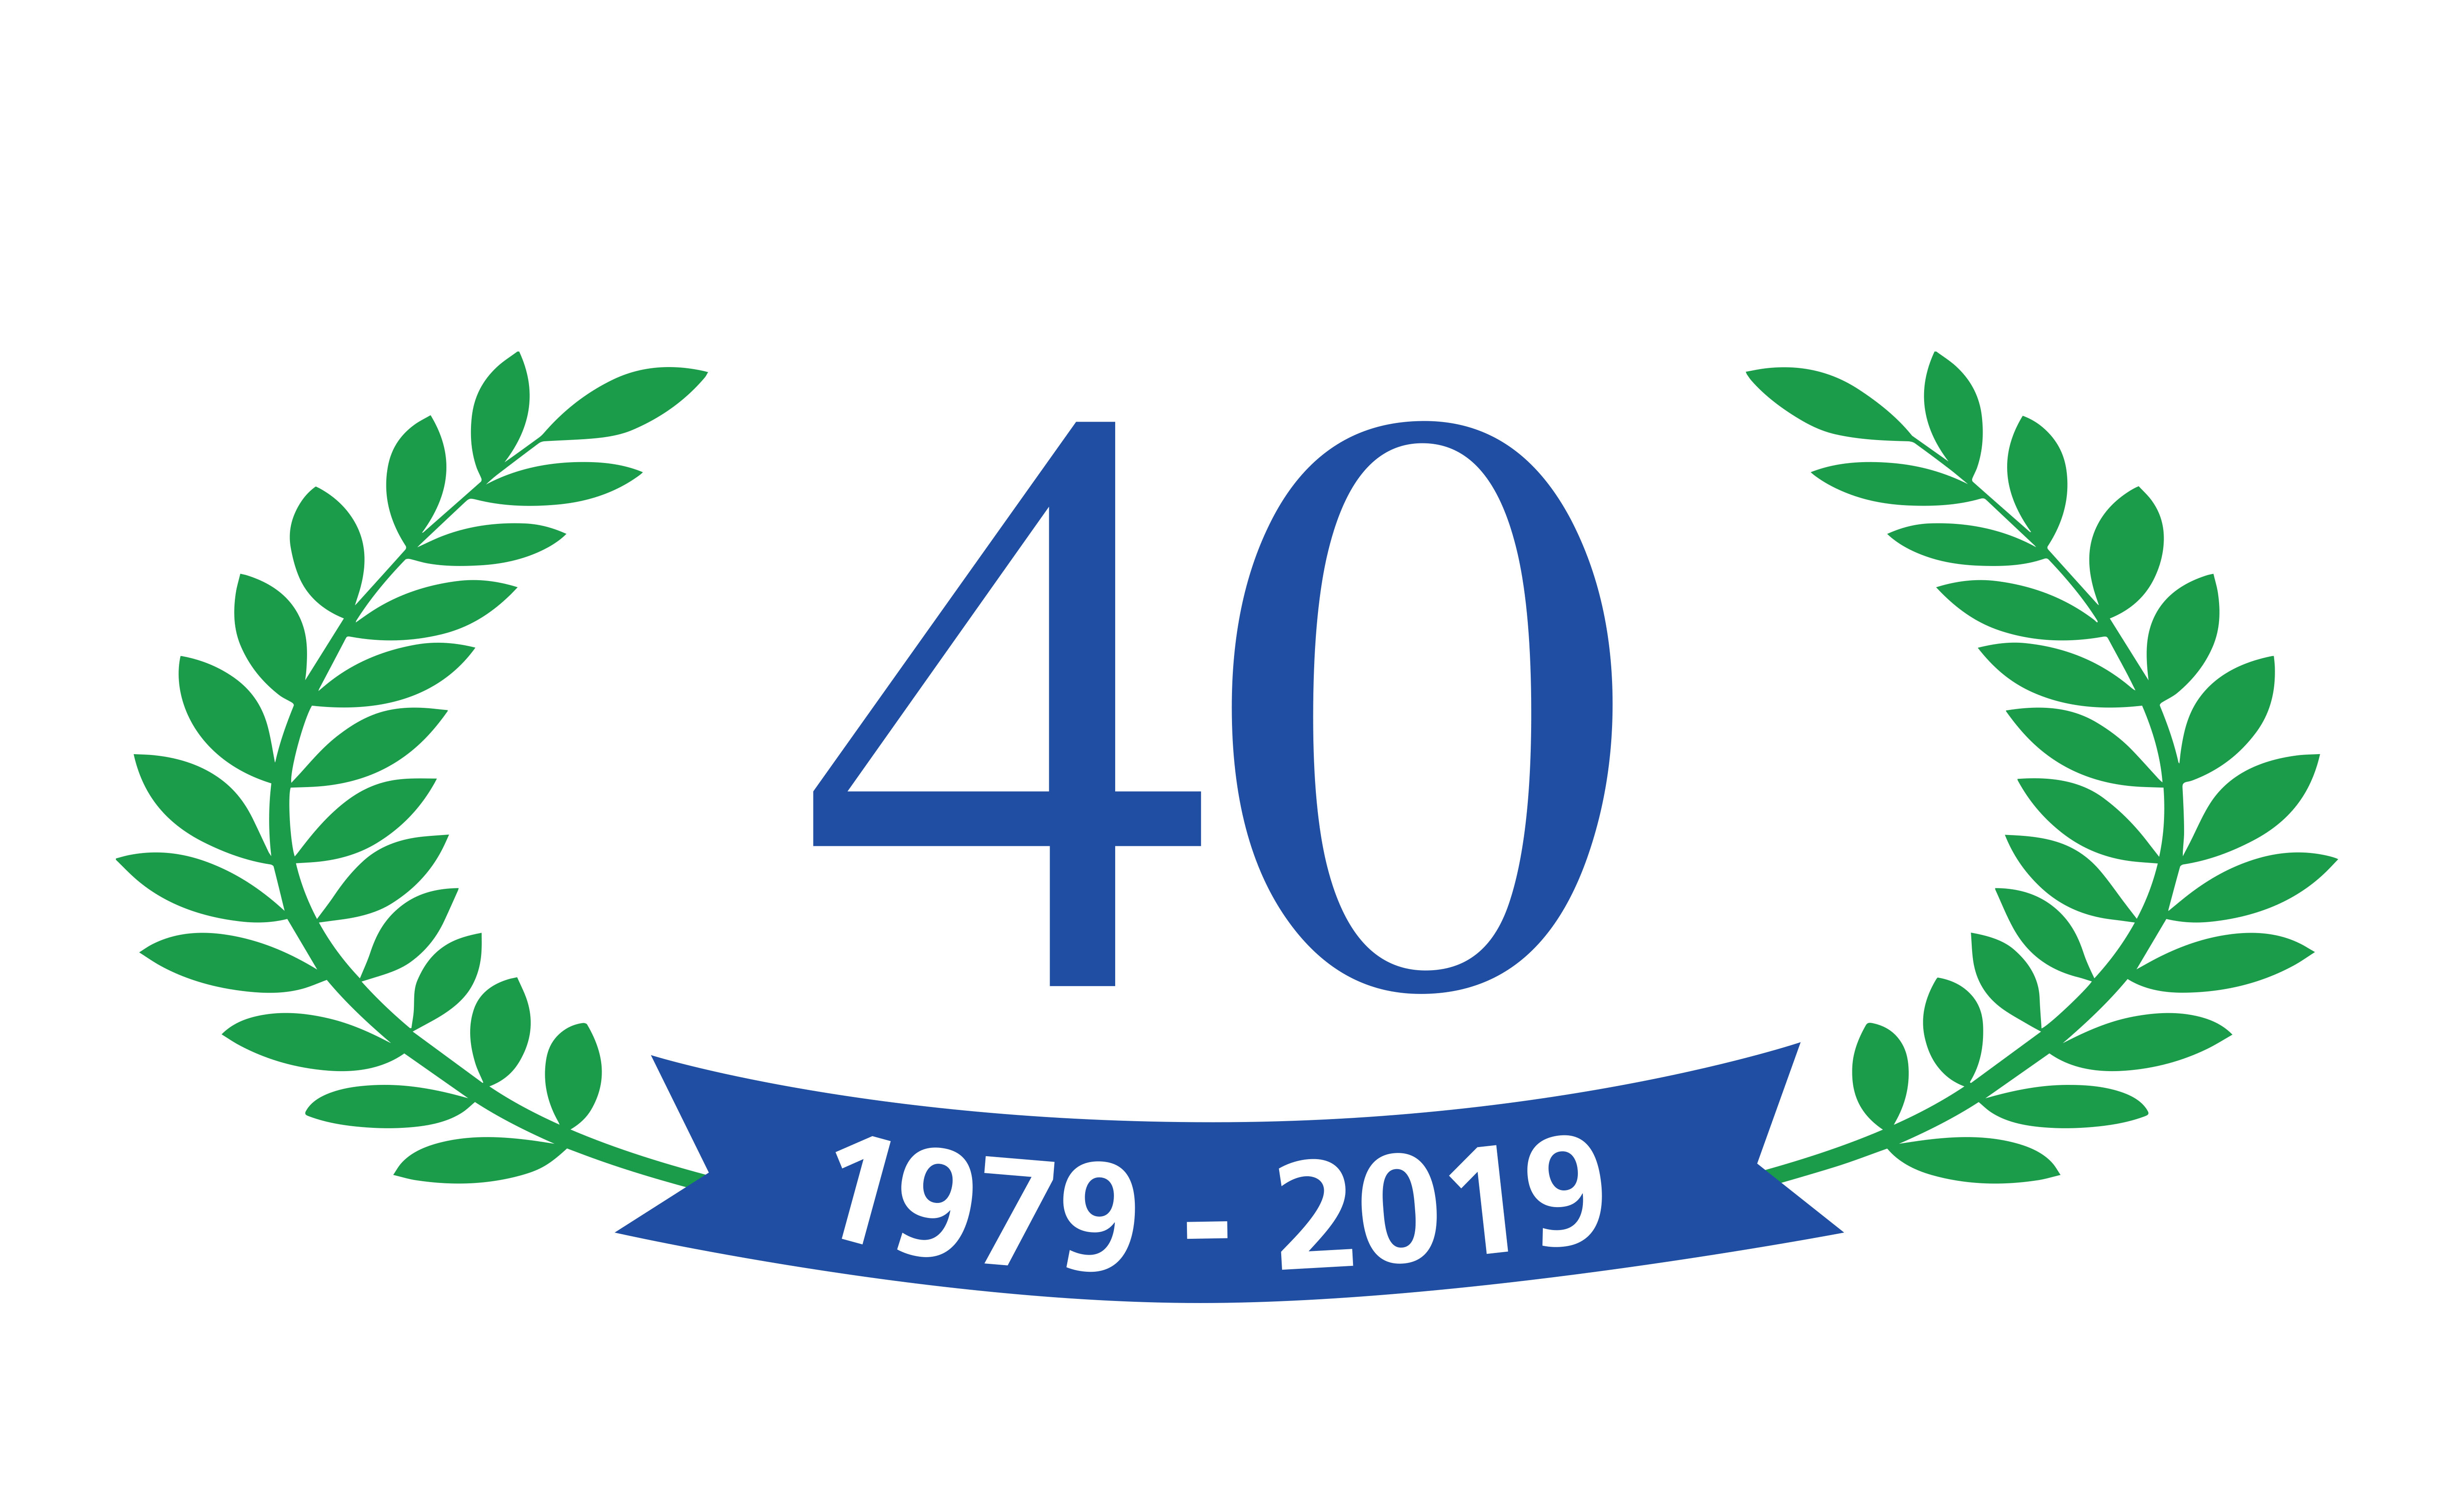 7th June 1979 – 7th June 2019: 40 years of acknowledgements, to improve ourselves.